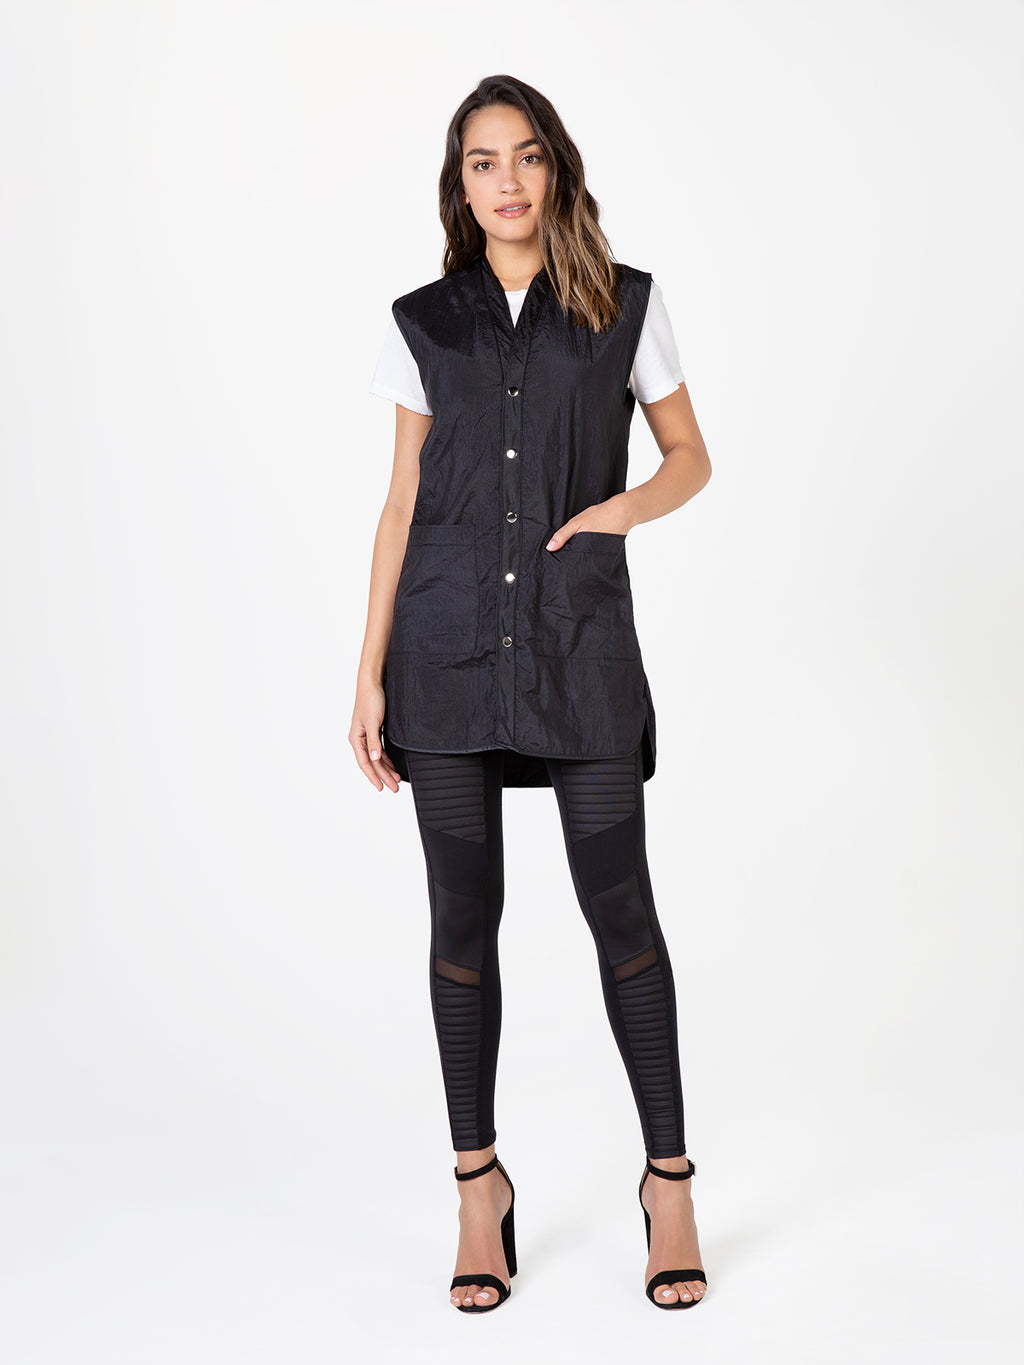 Betty Dain Vest for Hair Stylists with Pockets